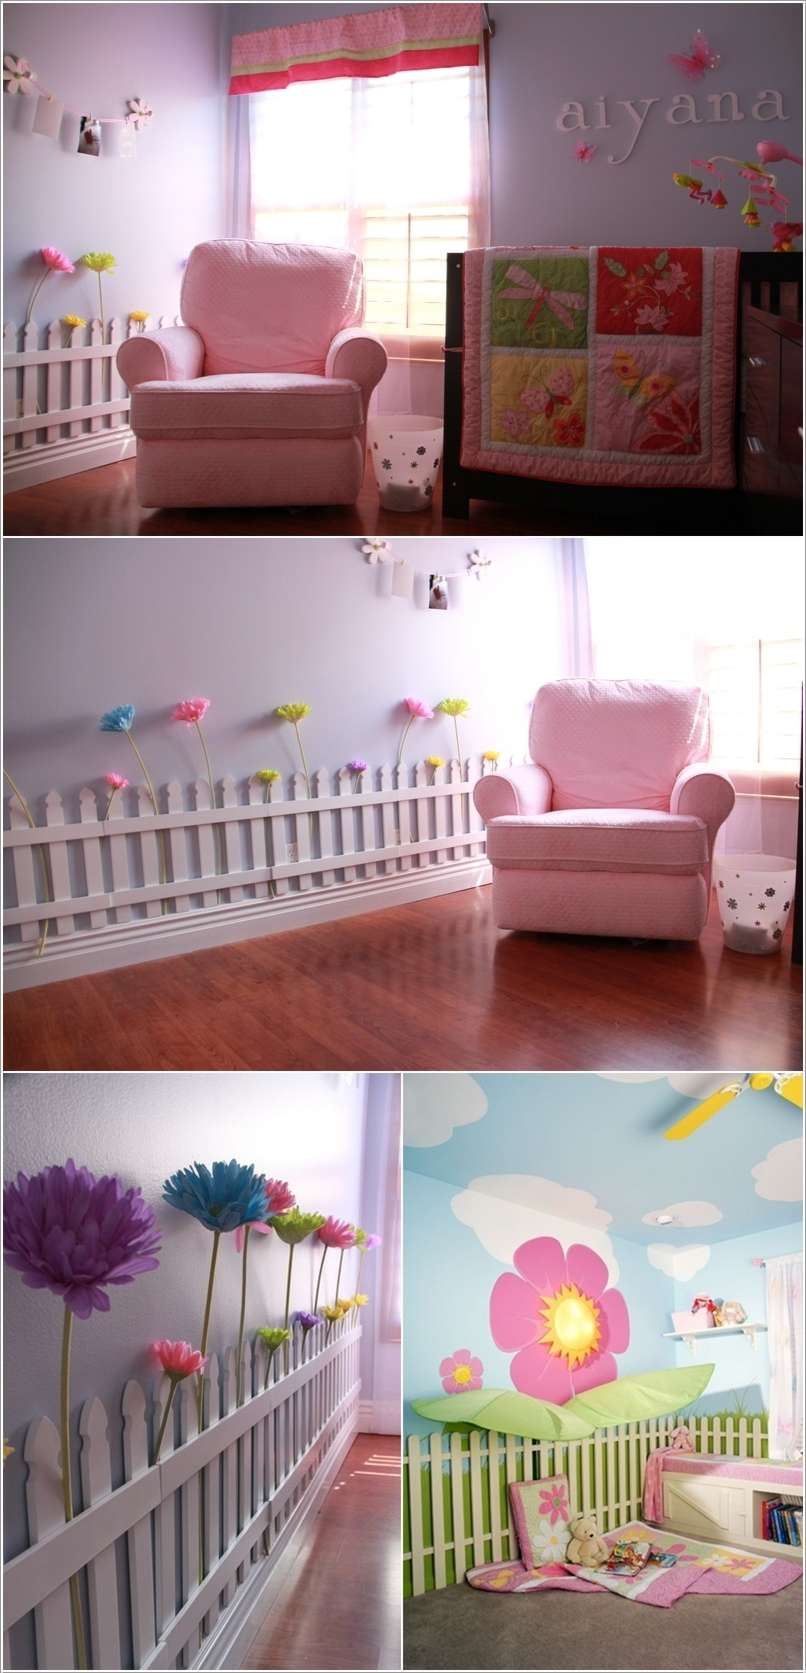 8  10 Cute Ideas to Add Garden Inspiration to Your Kids' Room 820